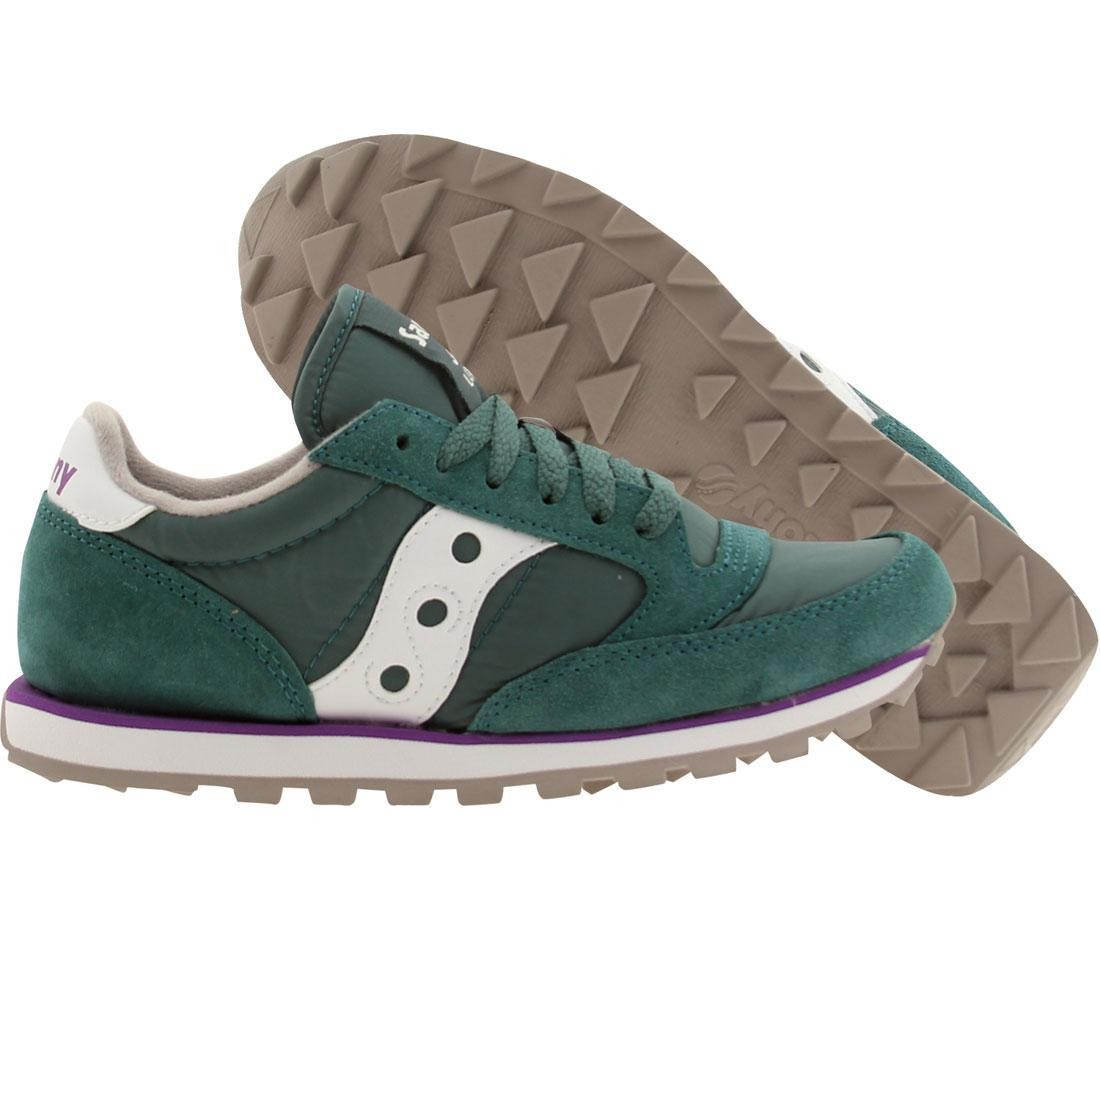 Buy saucony low pro Discounted   Up to OFF62% Discounted pro 35b06b